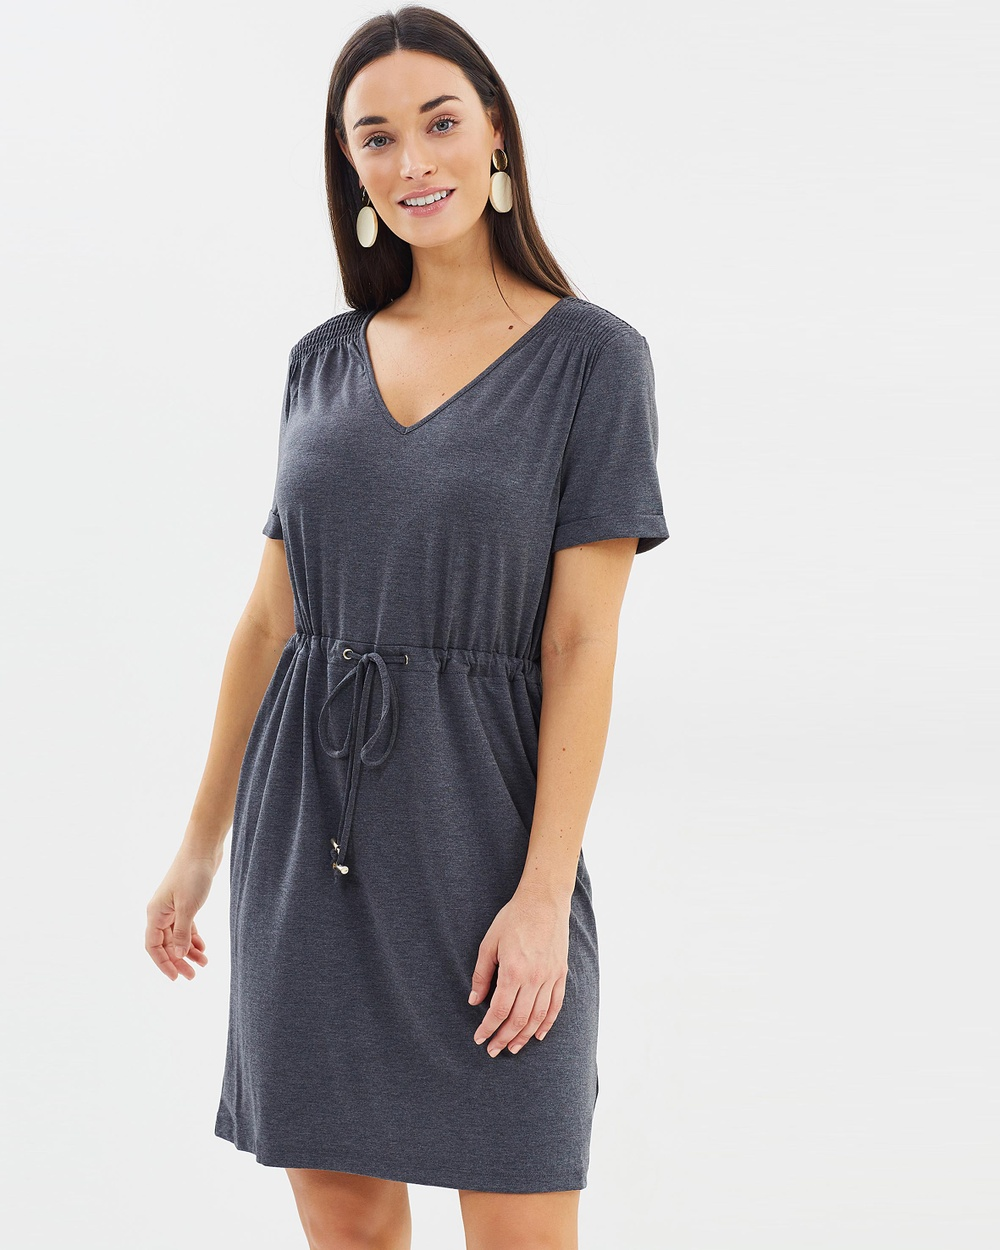 Dorothy Perkins T Shirt Dress Dresses Dark Grey T-Shirt Dress